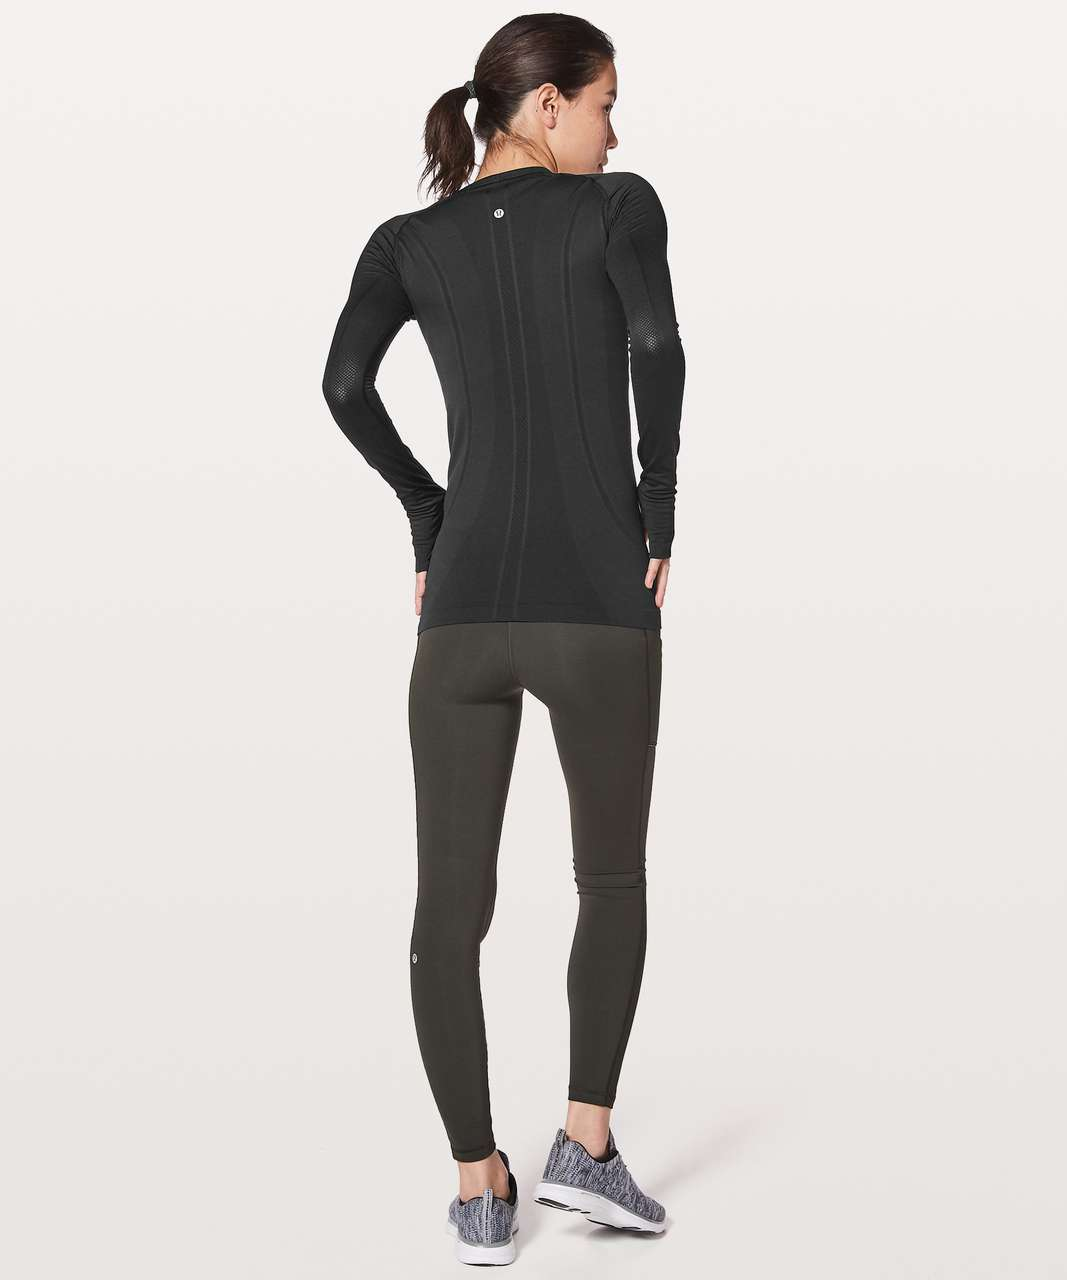 Lululemon Swiftly Tech Long Sleeve Crew Reflective - Black / Black